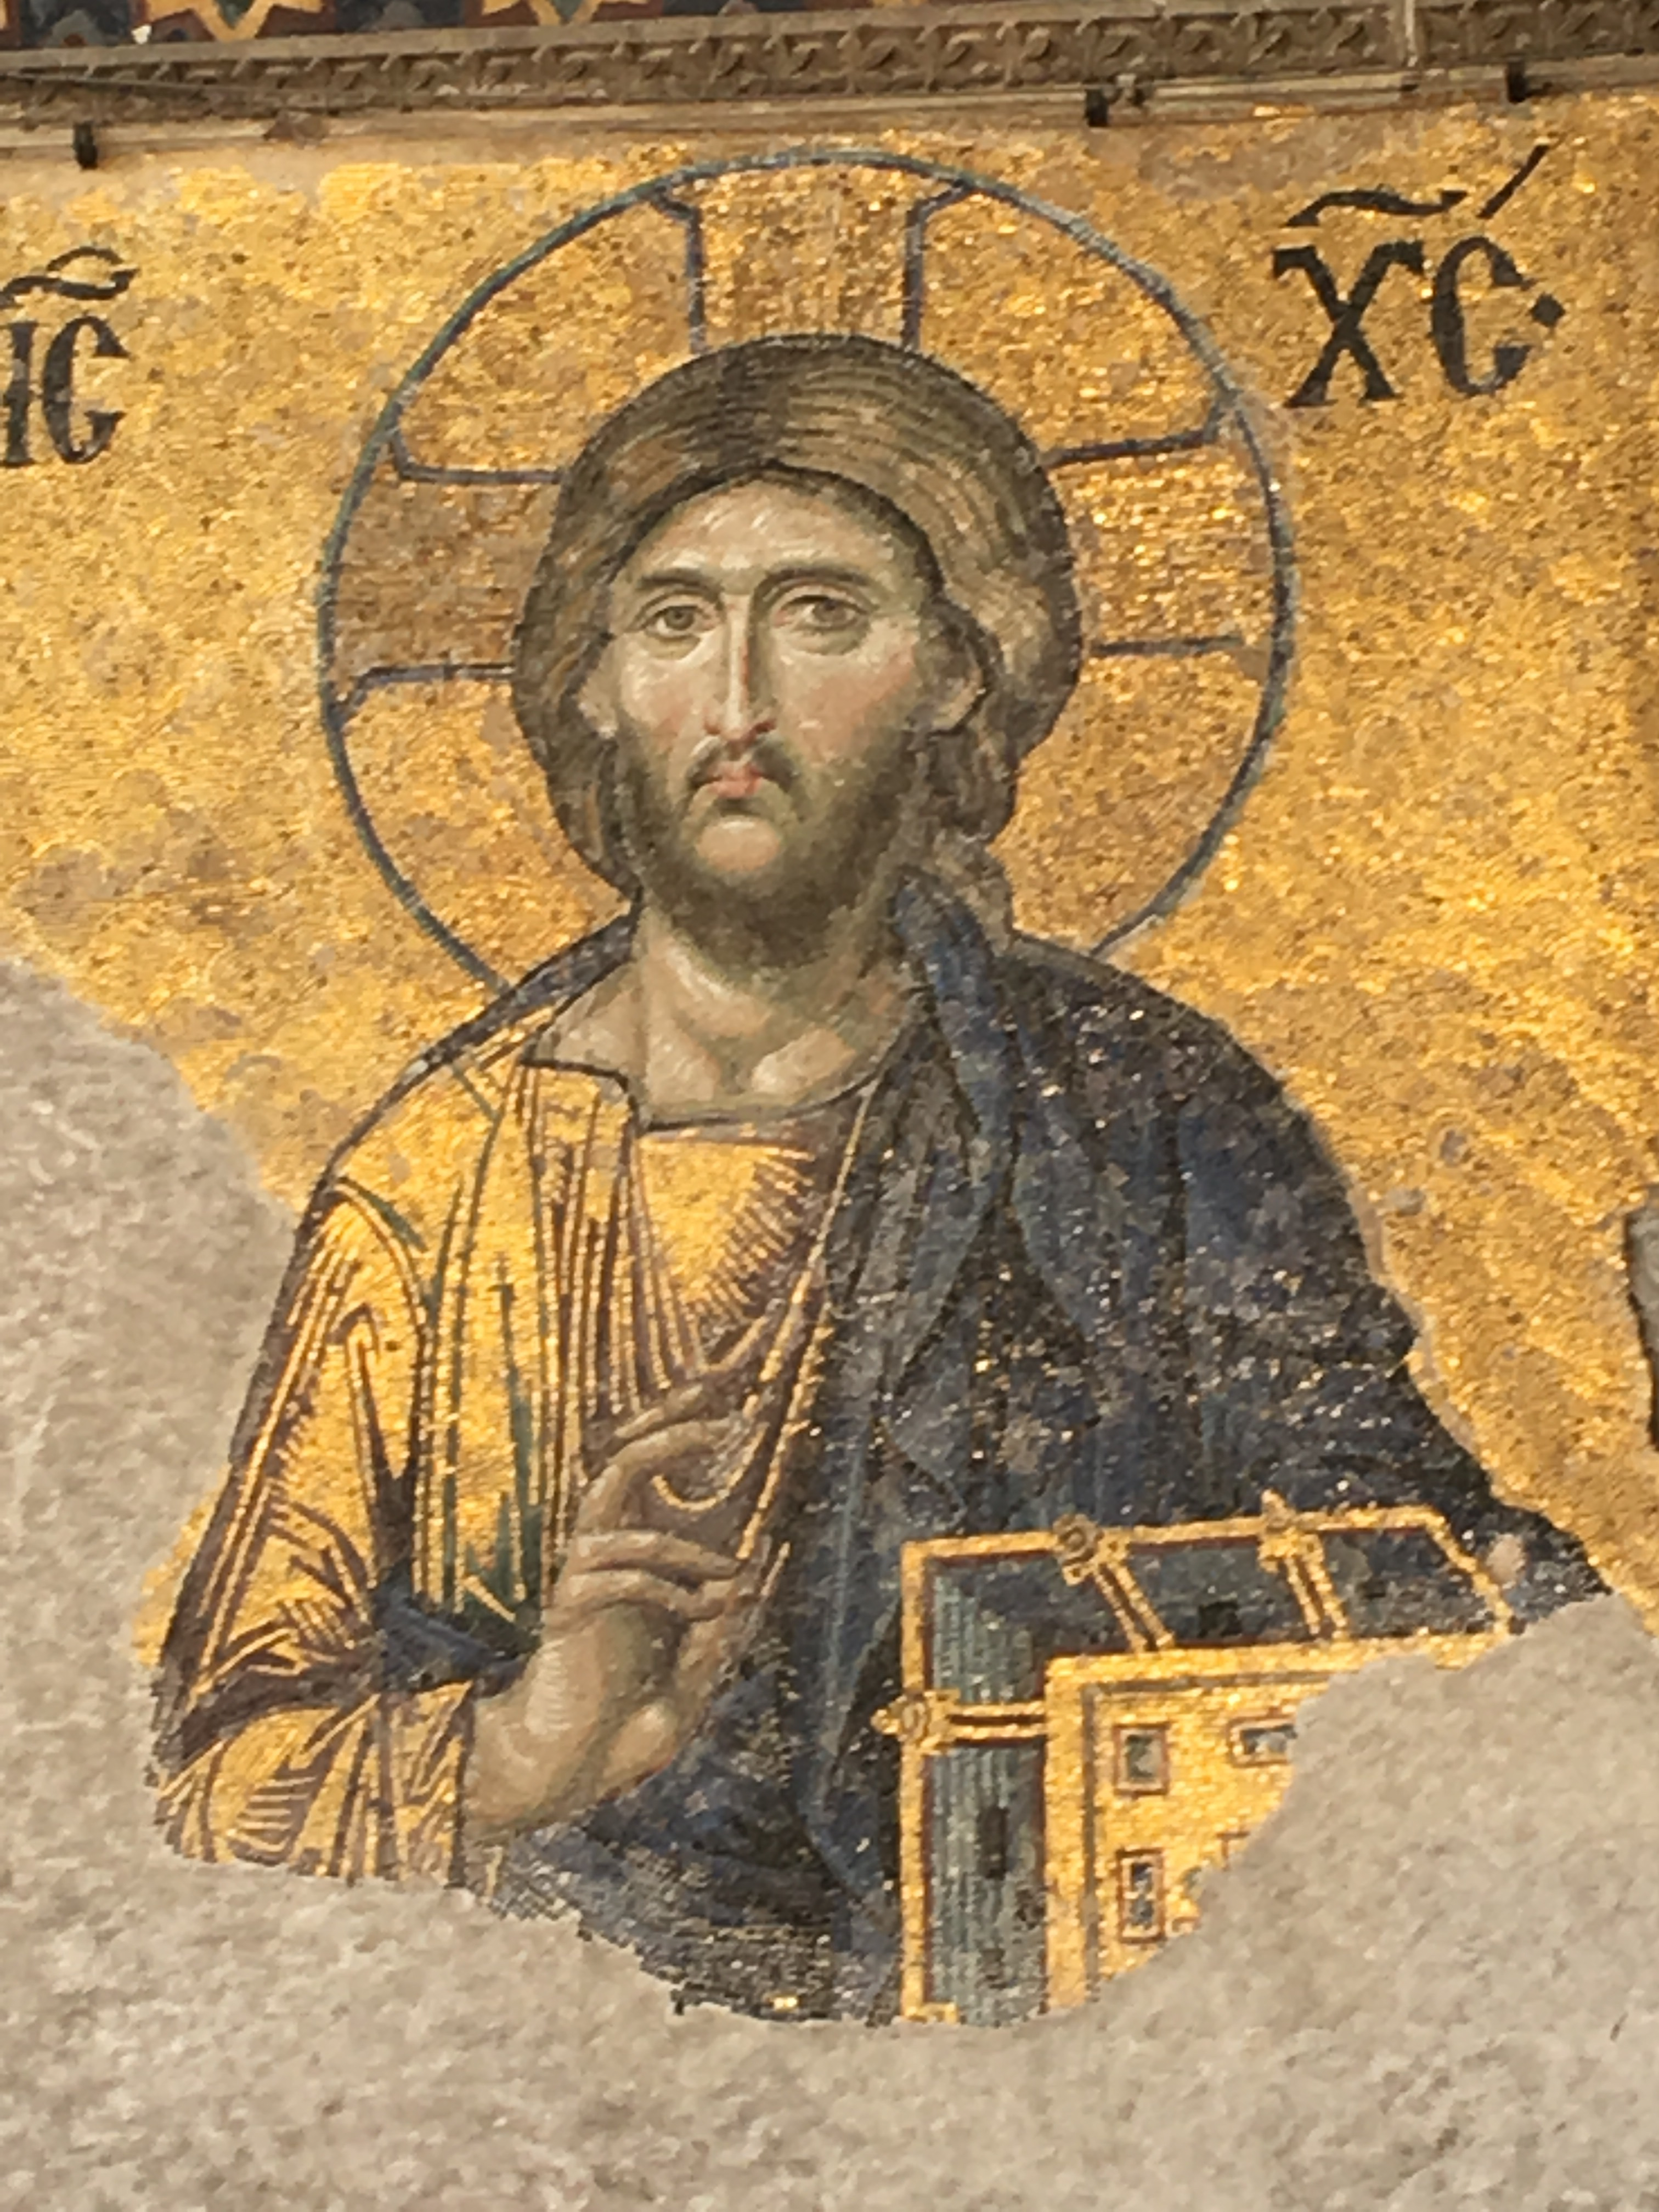 Christian iconography inside Hagia Sophia. Brownell. 2019